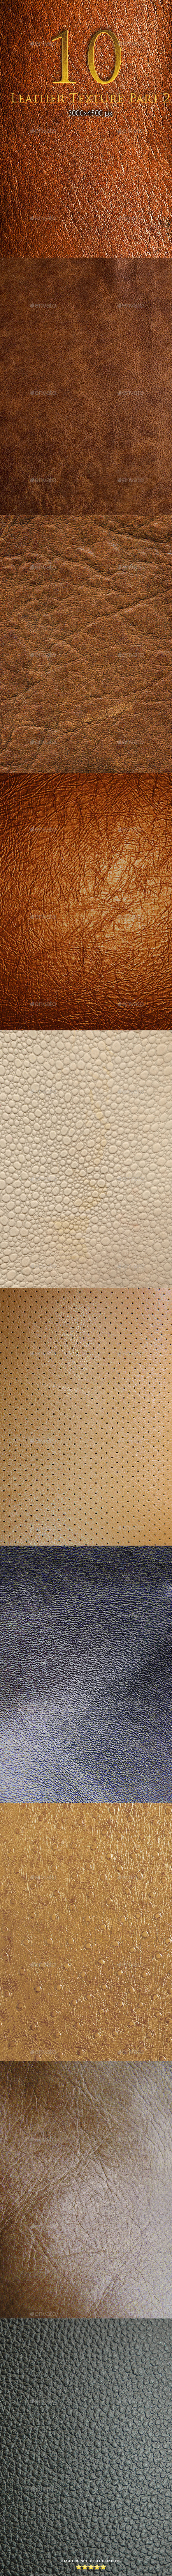 10 Leather Texture Part 2 - Textures